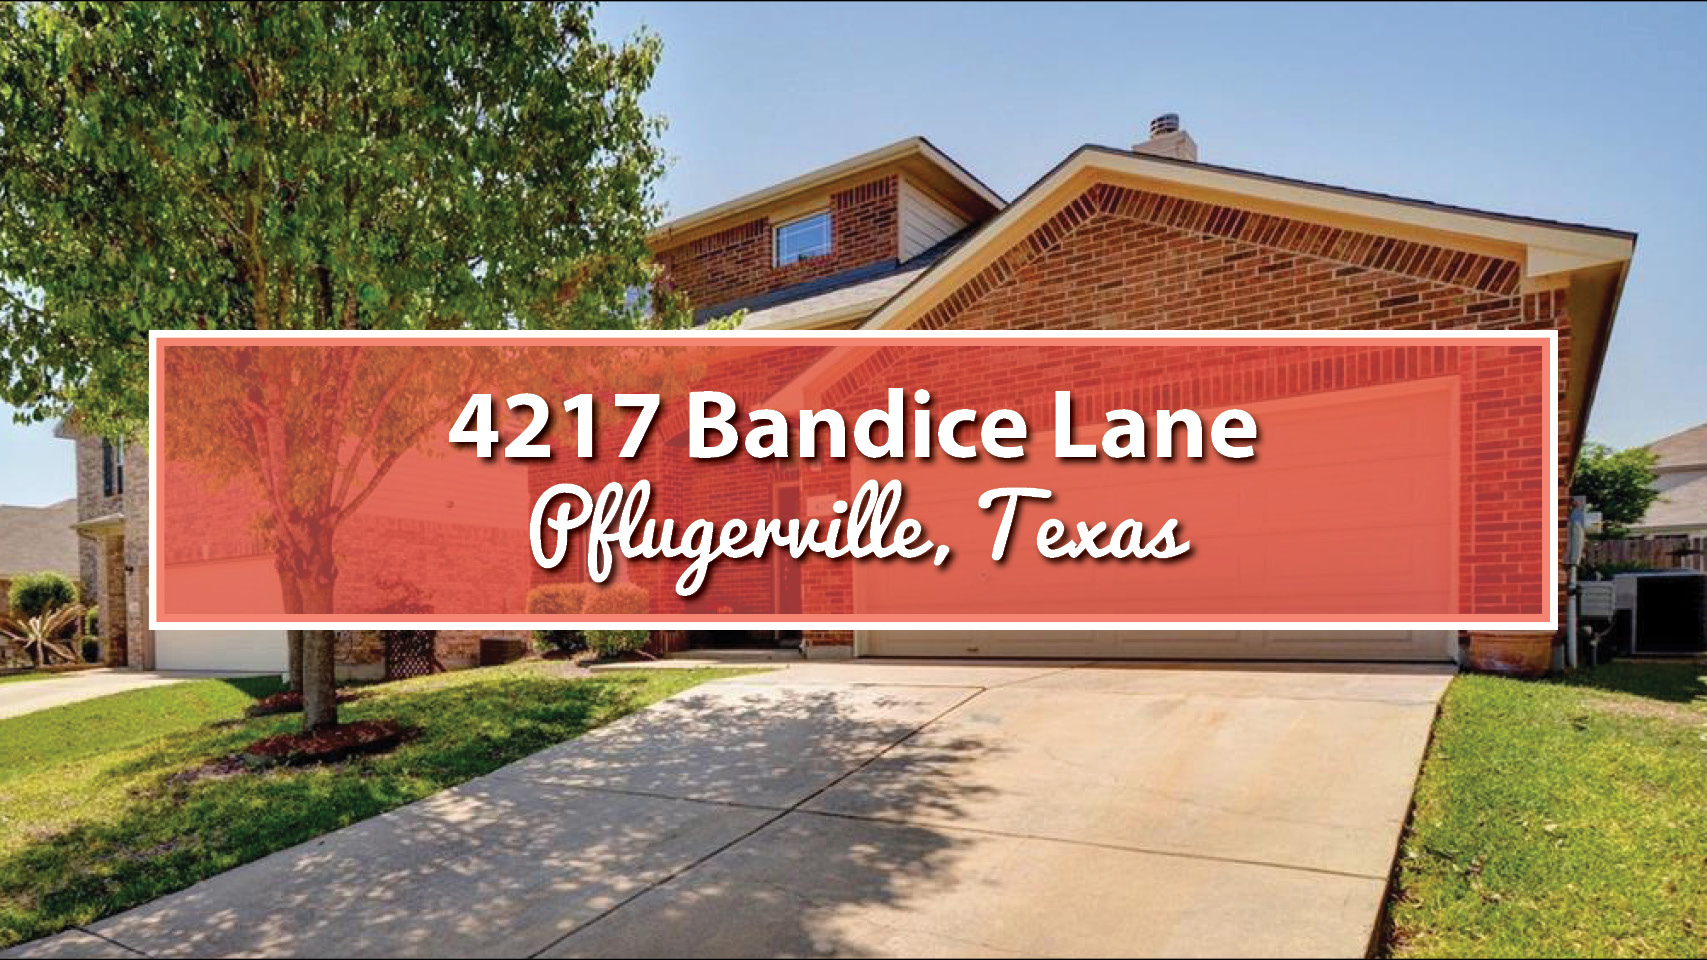 [Featured] 4217 Bandice Lane, Pflugerville, Texas 78660